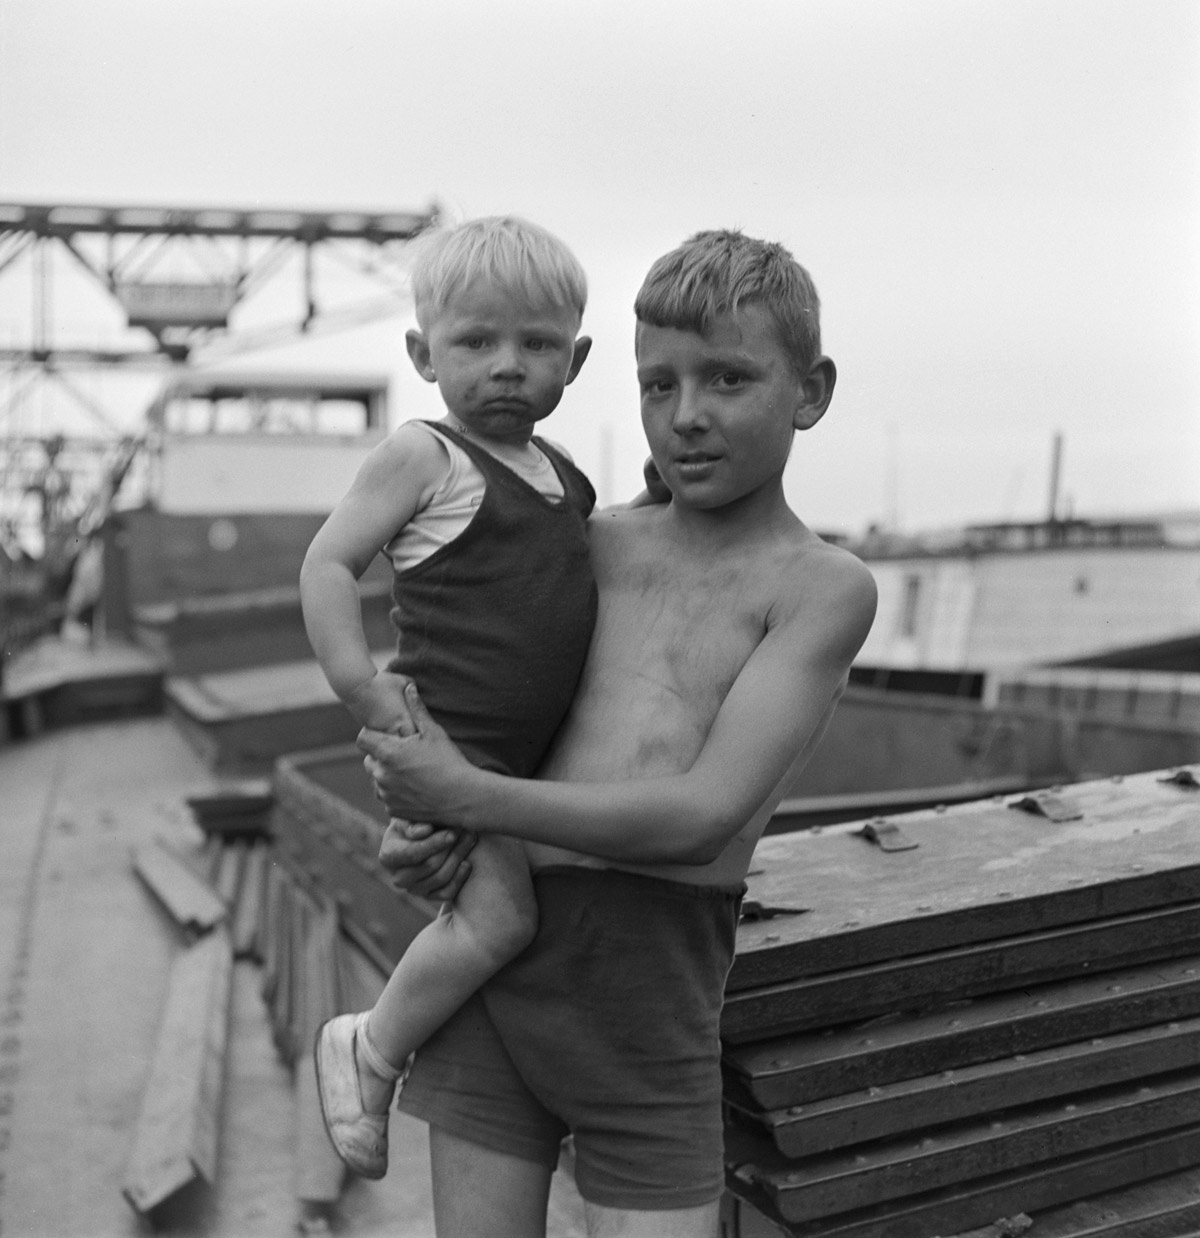 Anon. 'Two brothers in the Rhine harbour at Kleinhüningen, Basel' c. 1939. © Swiss National Museum